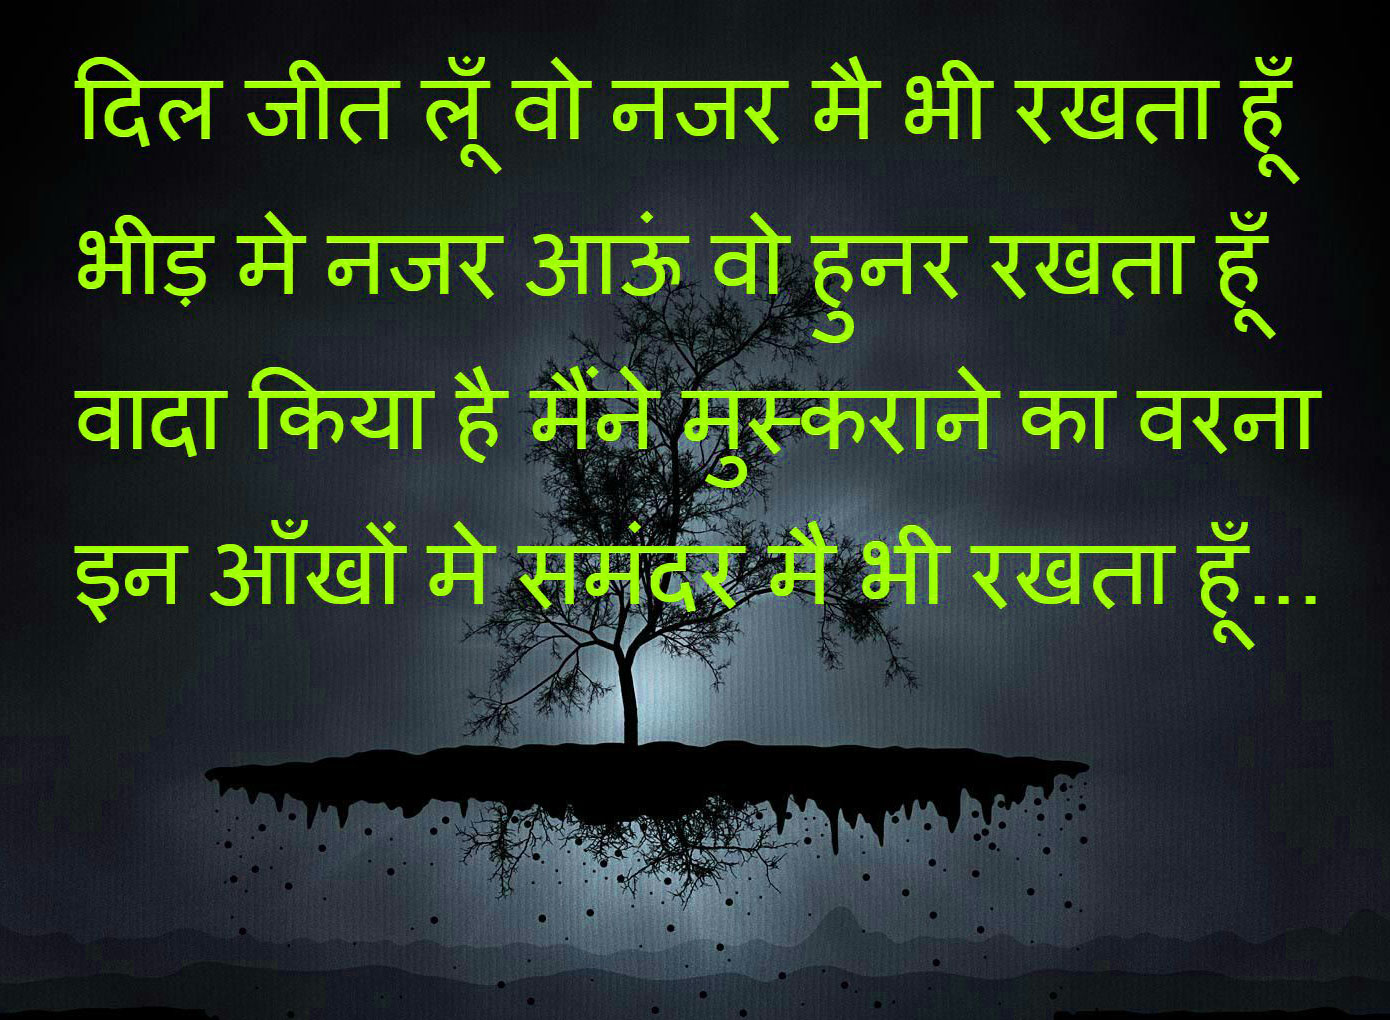 Hindi-Bewafa-Shayari-Images-87